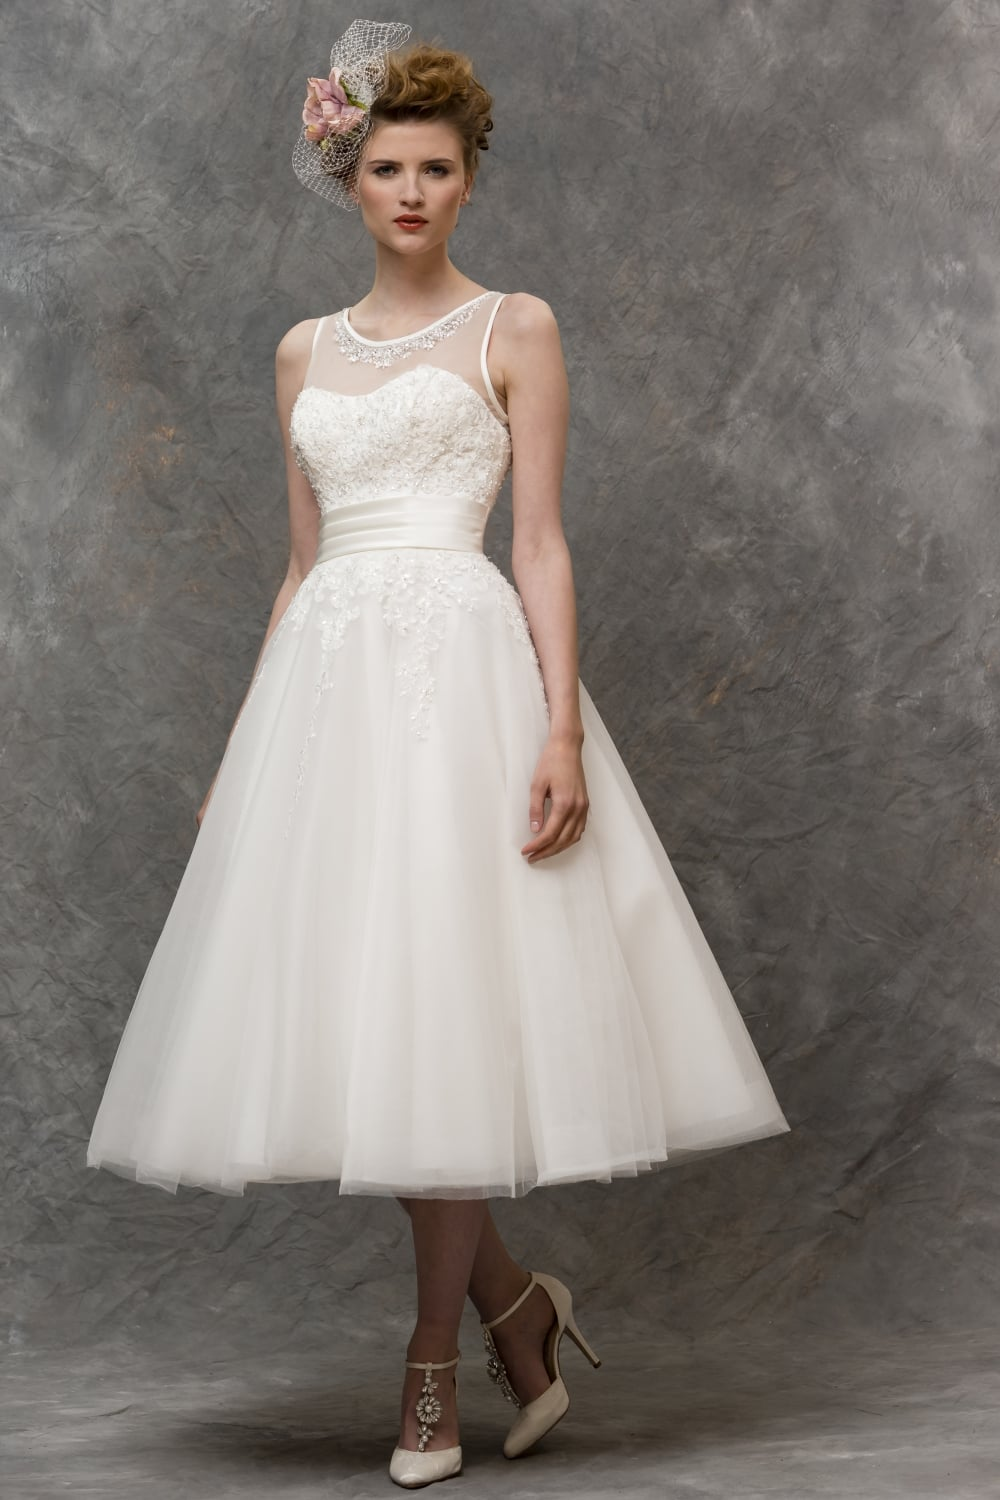 lizzie 1950s tea length short wedding dress